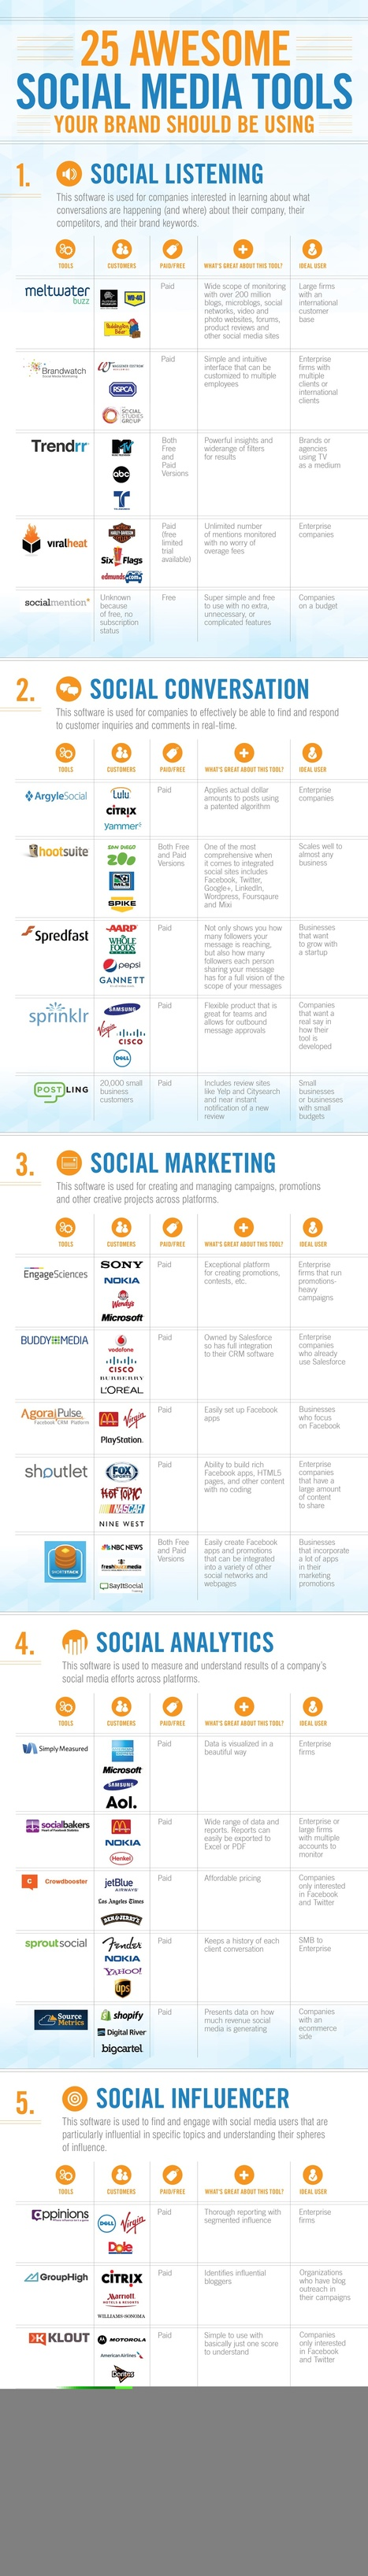 Top 25 Social Media Monitoring Tools (Infographic) | Random Everything | Scoop.it